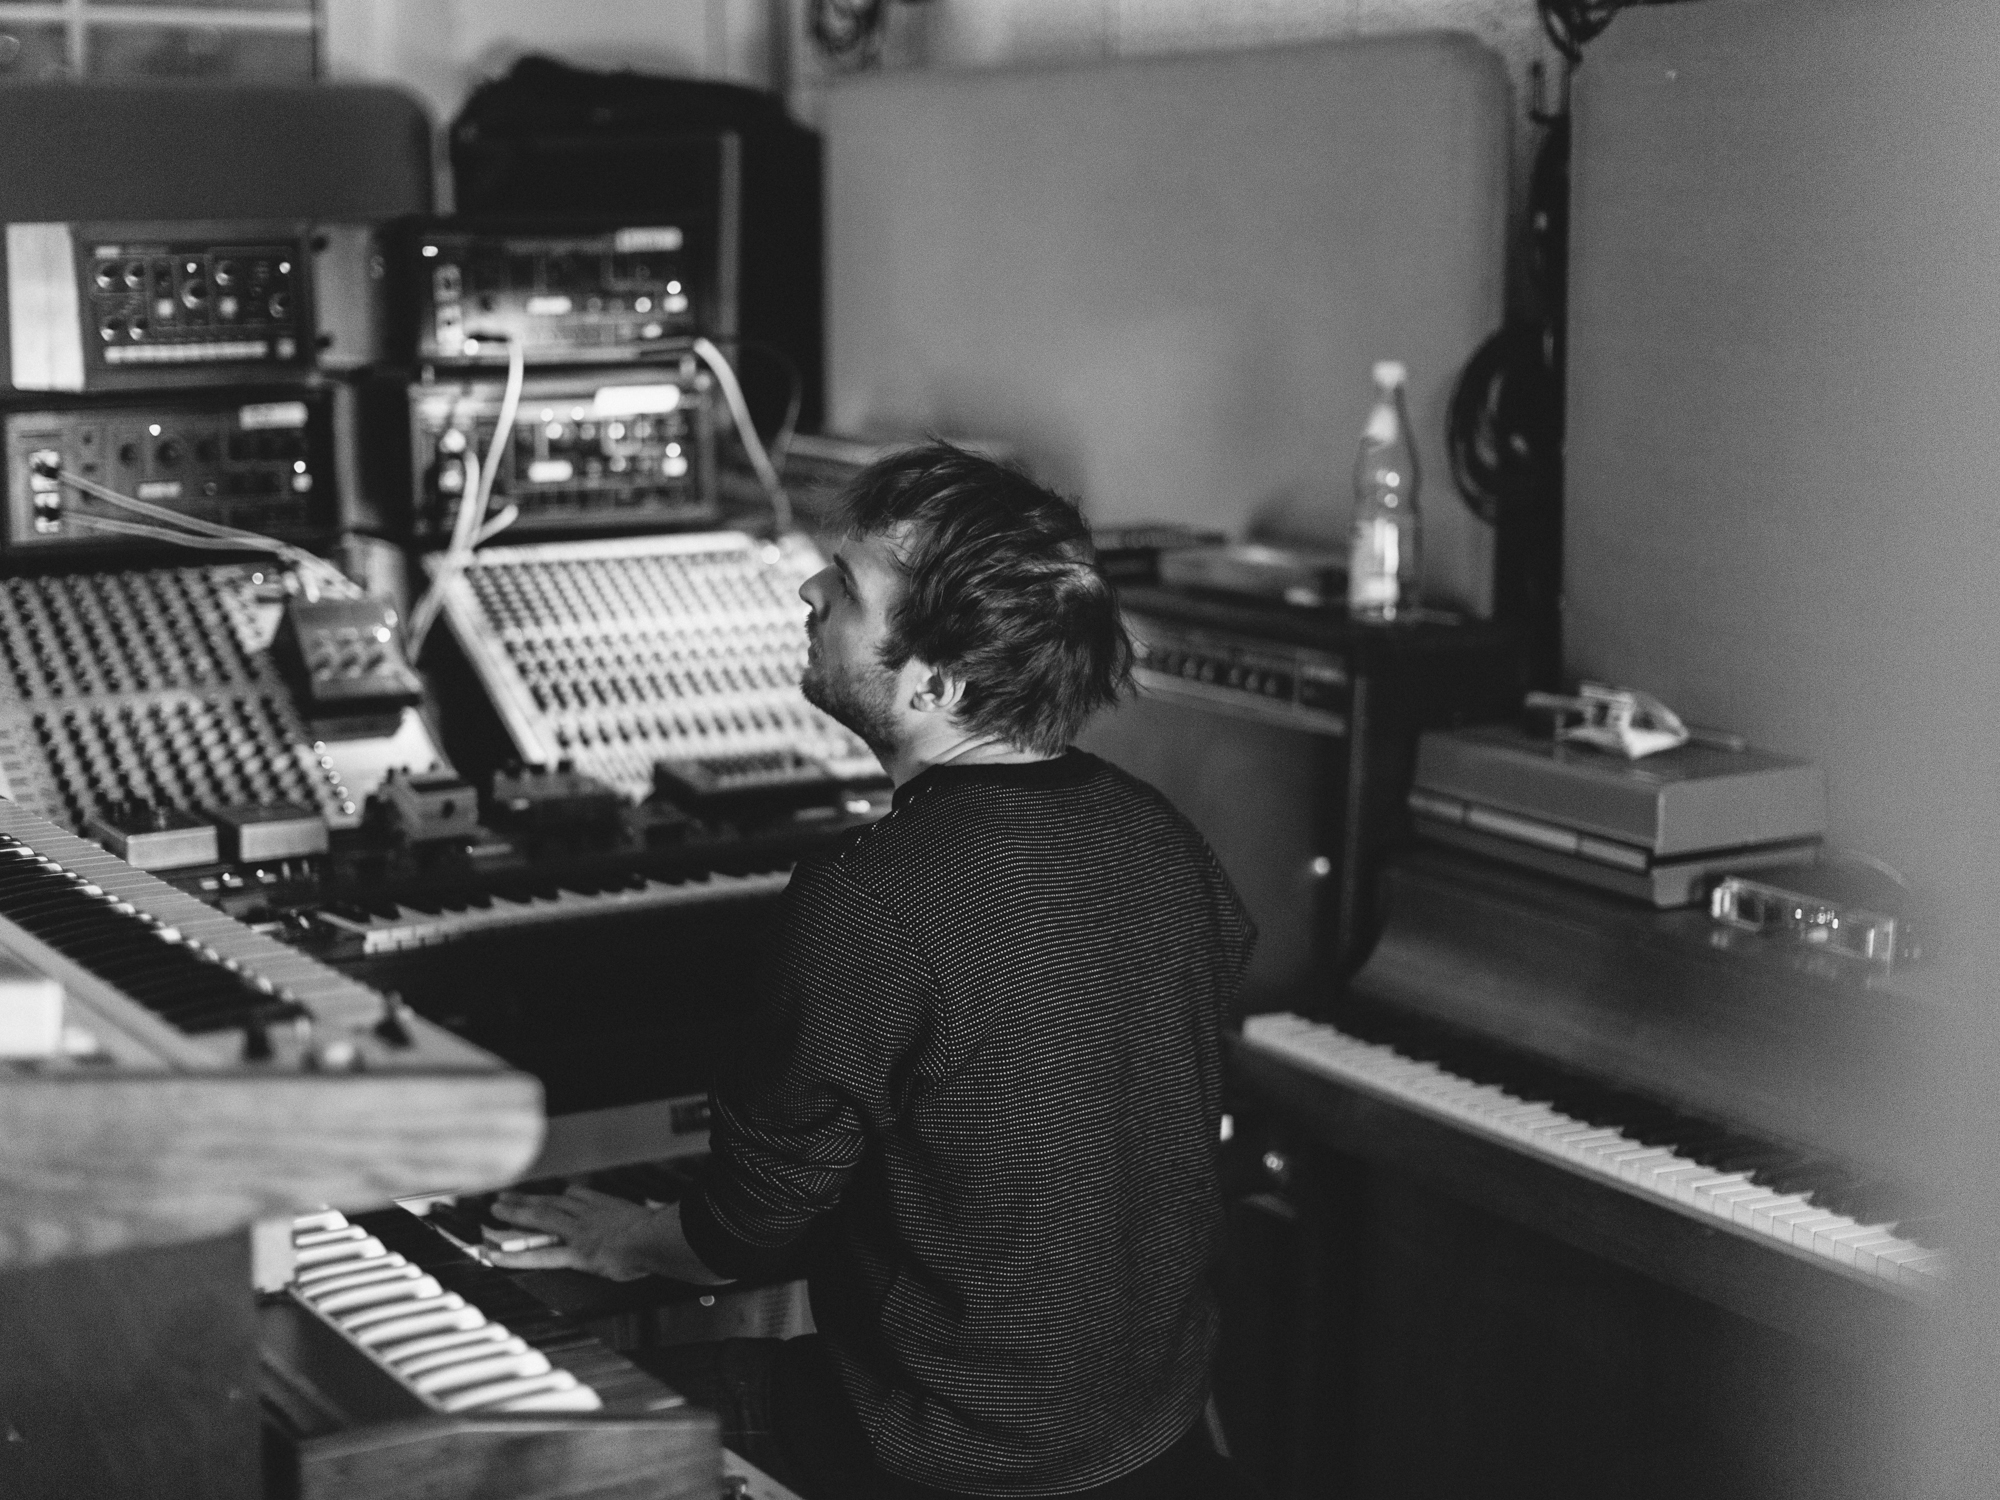 Composer Nils Frahm in his rehearsal studio in Berlin.